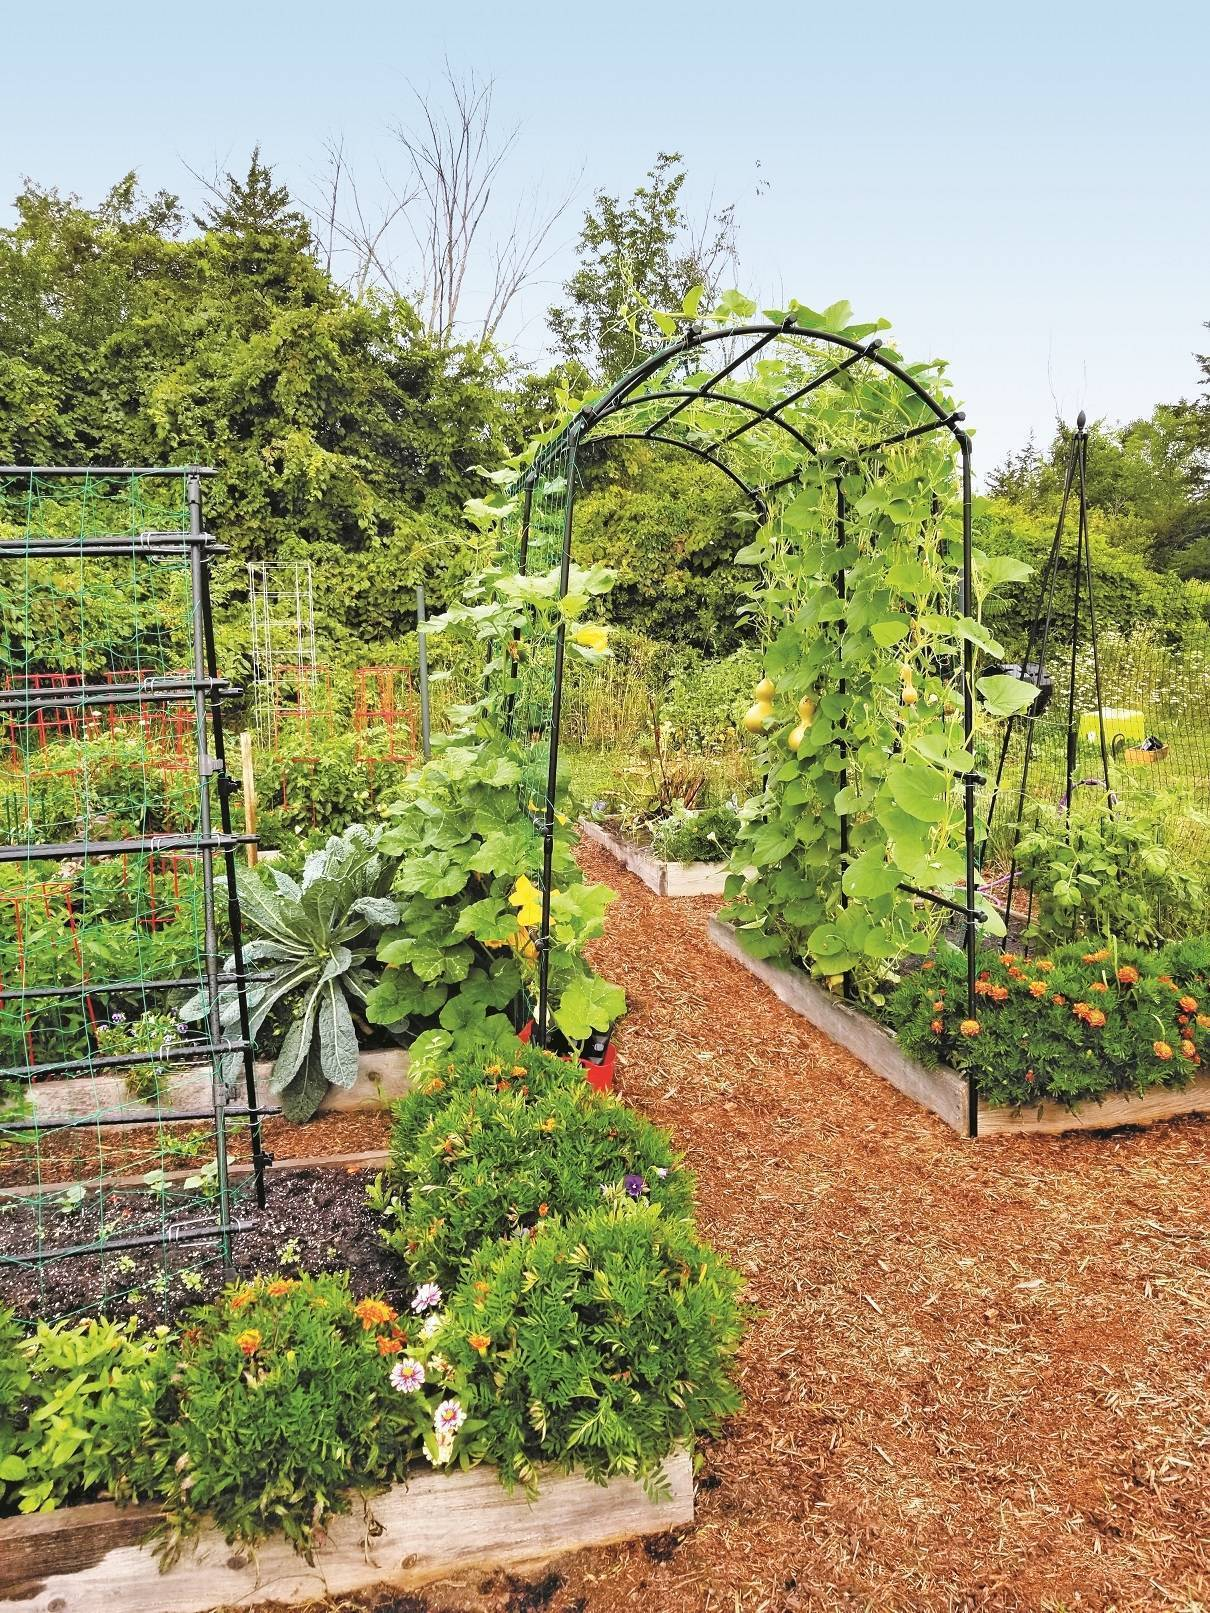 Arbors can provide a beautiful framework and vertical gardening space for pole beans, melons, or squash in food gardens or serve as a support to climbing roses and flowering vines in garden beds.